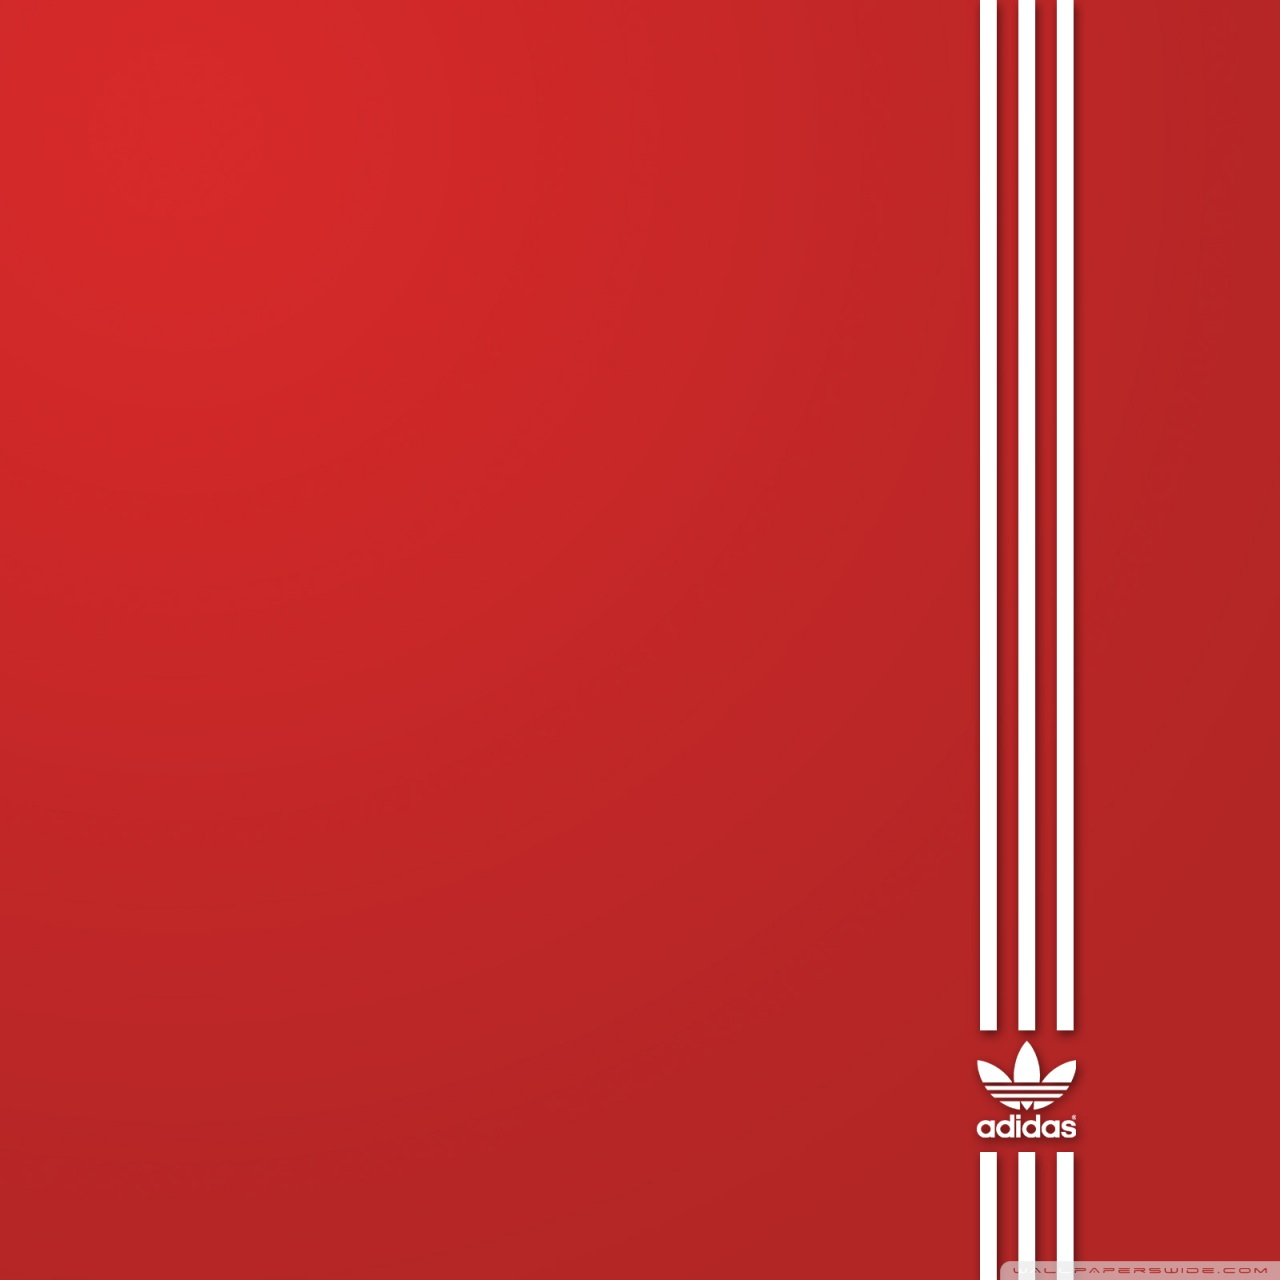 adidas style wallpapers